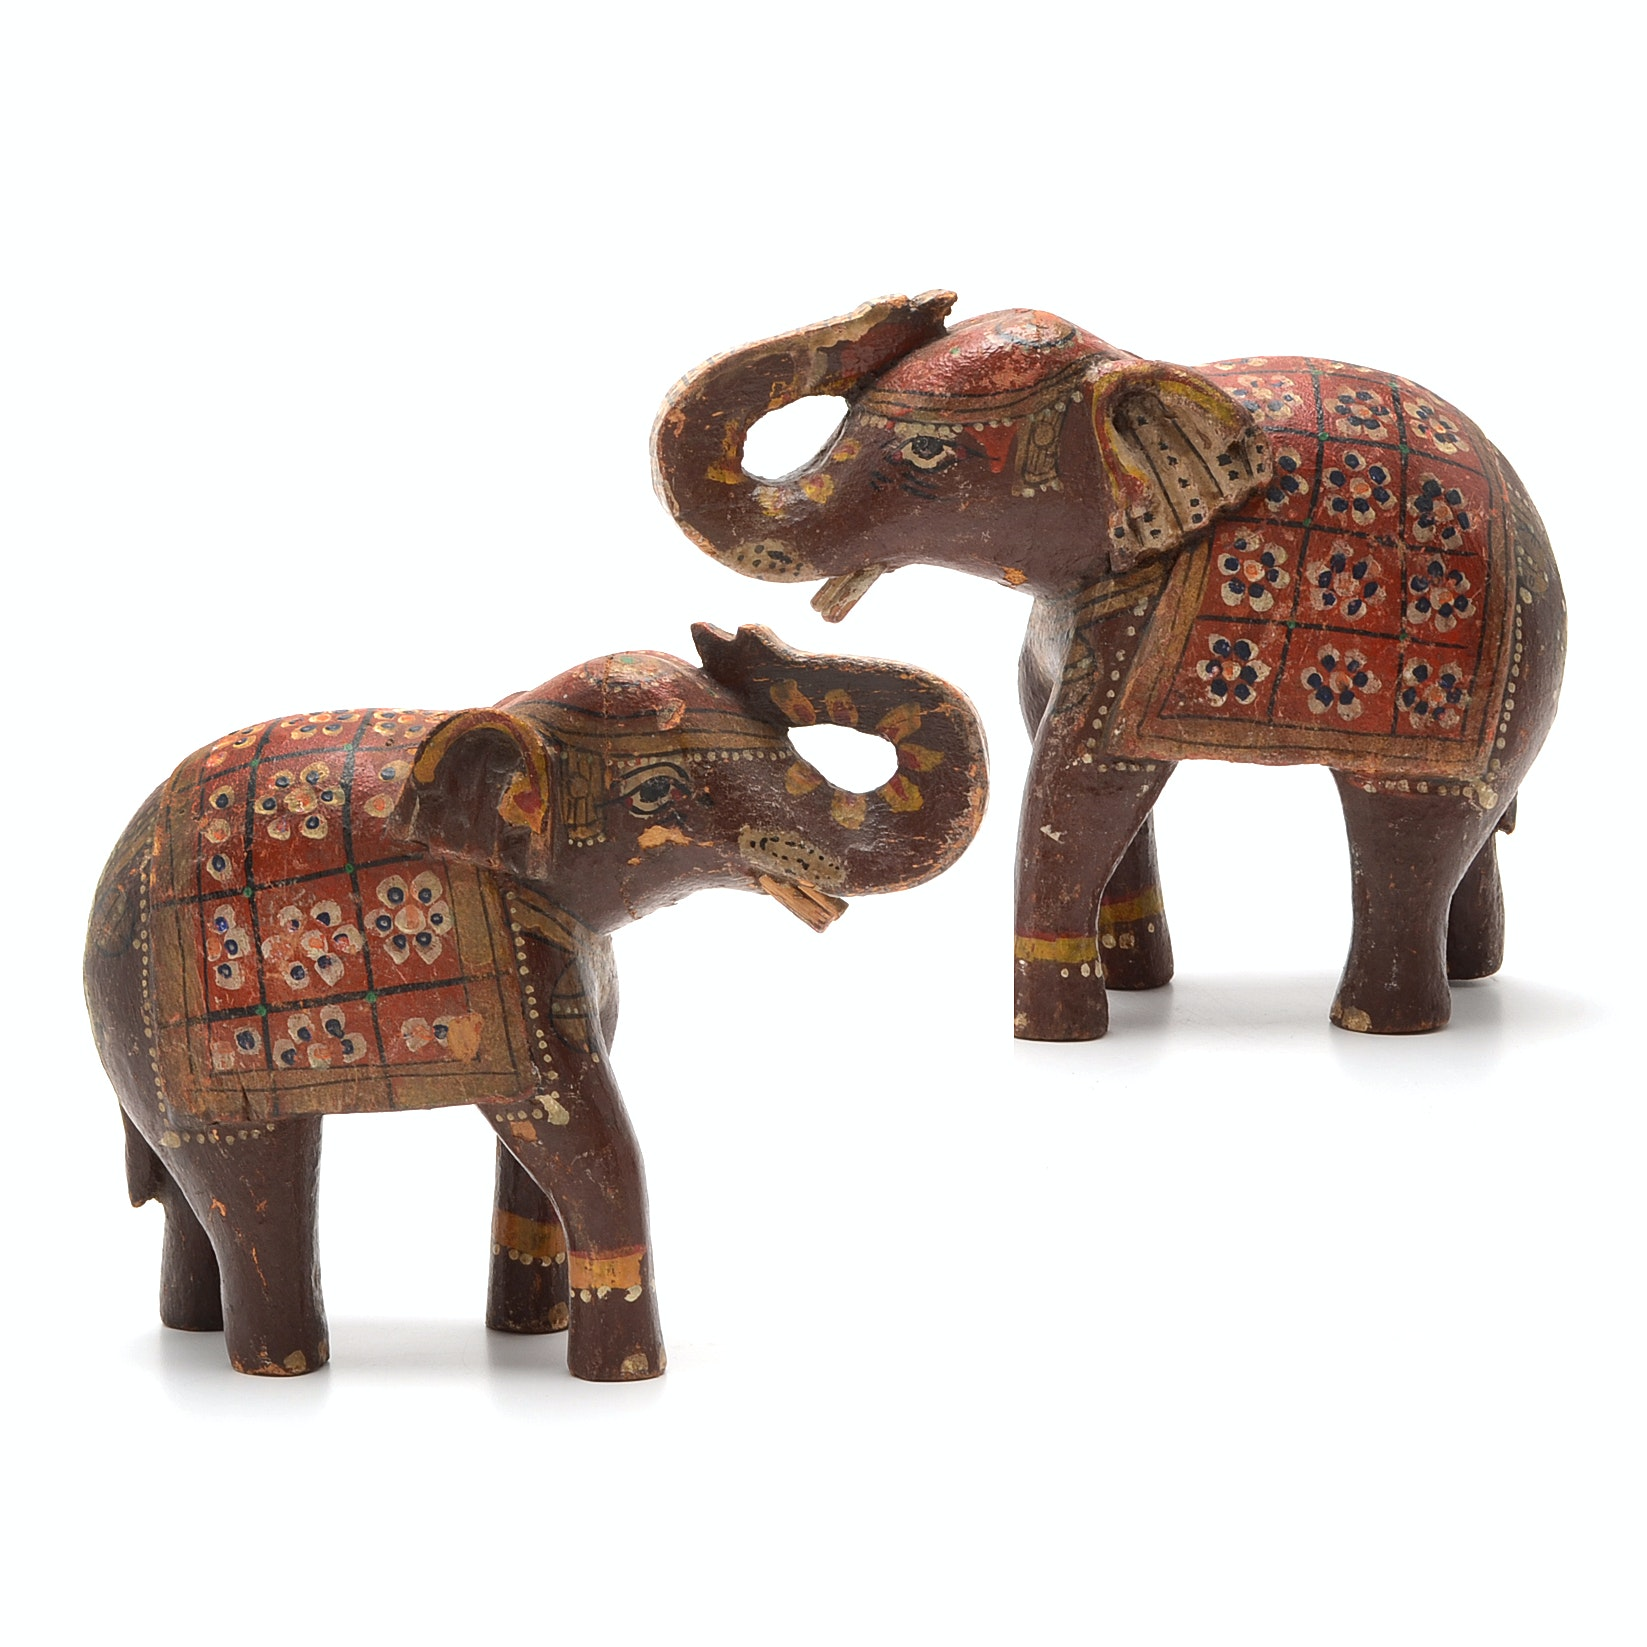 Pair of Carved Wood and Hand Decorated Indian Elephants